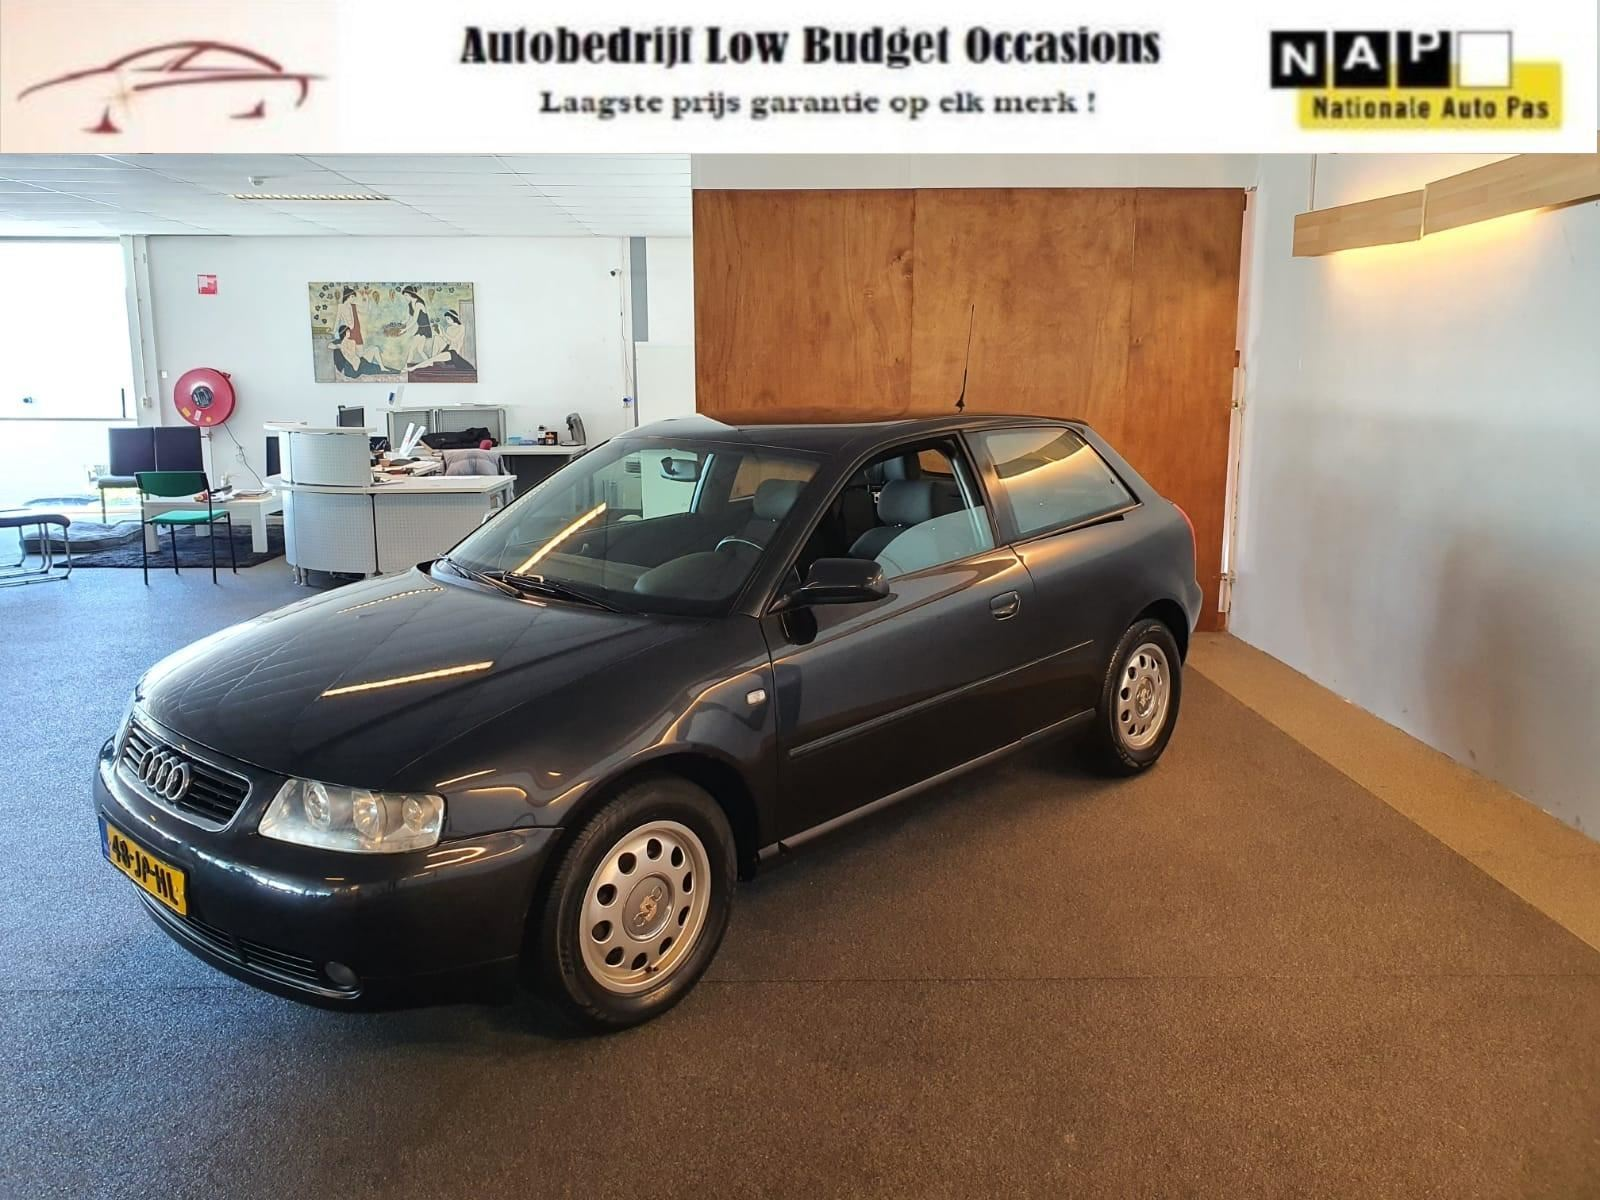 Audi A3 occasion - Low Budget Occasions